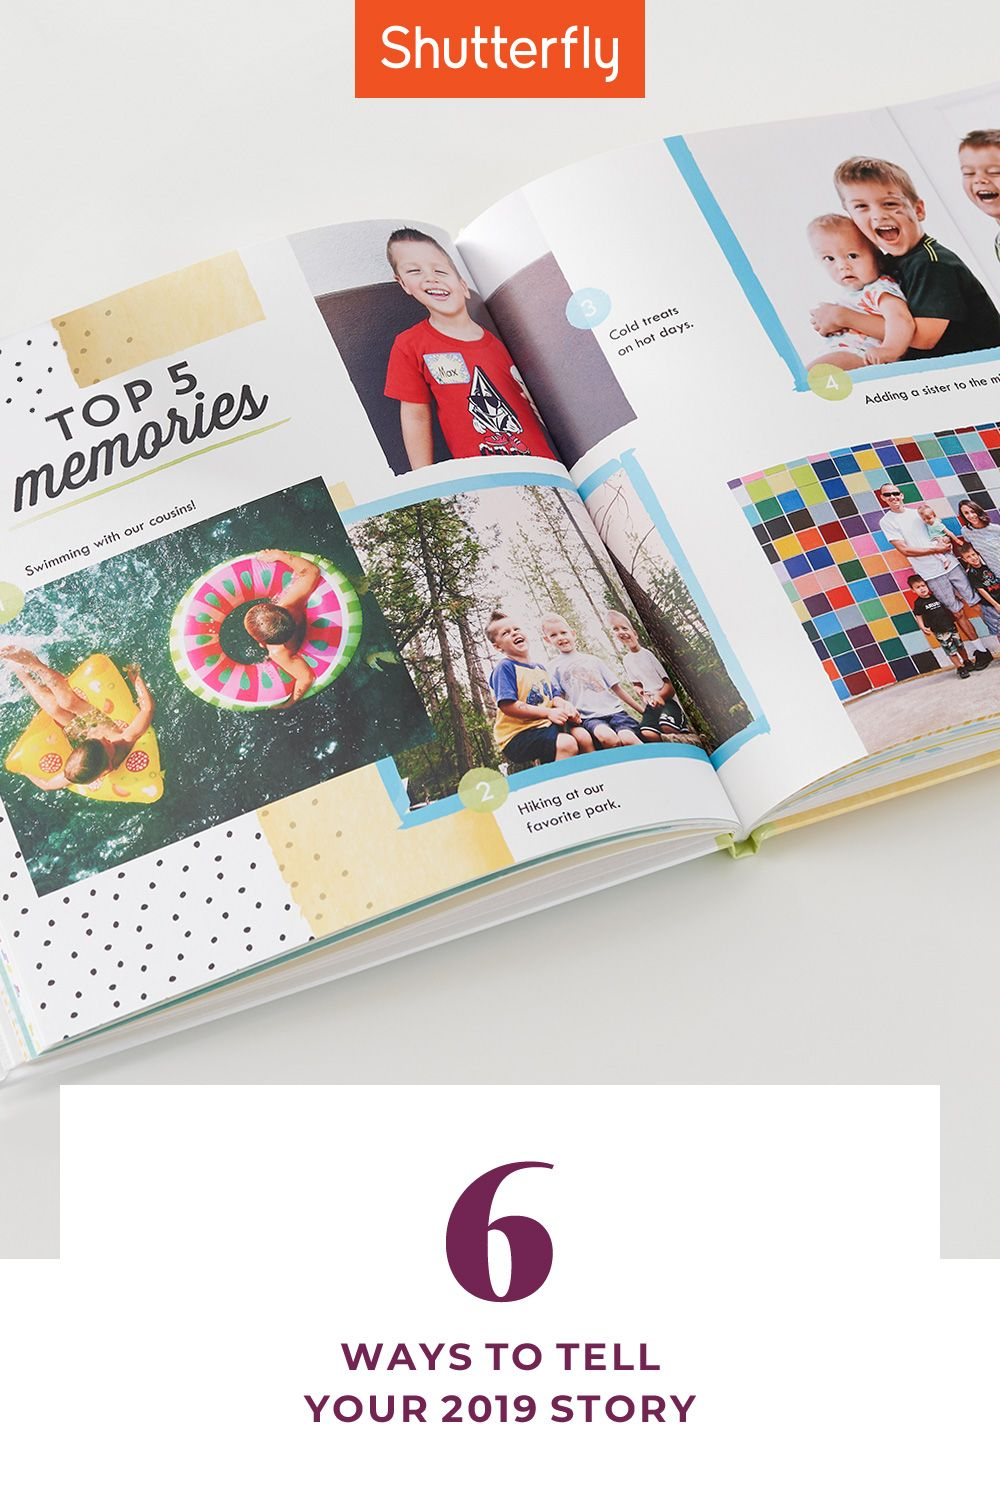 bfa4d8fca804c6624e8b3a020e4c6a35 - How Long Does It Take To Get Your Shutterfly Book